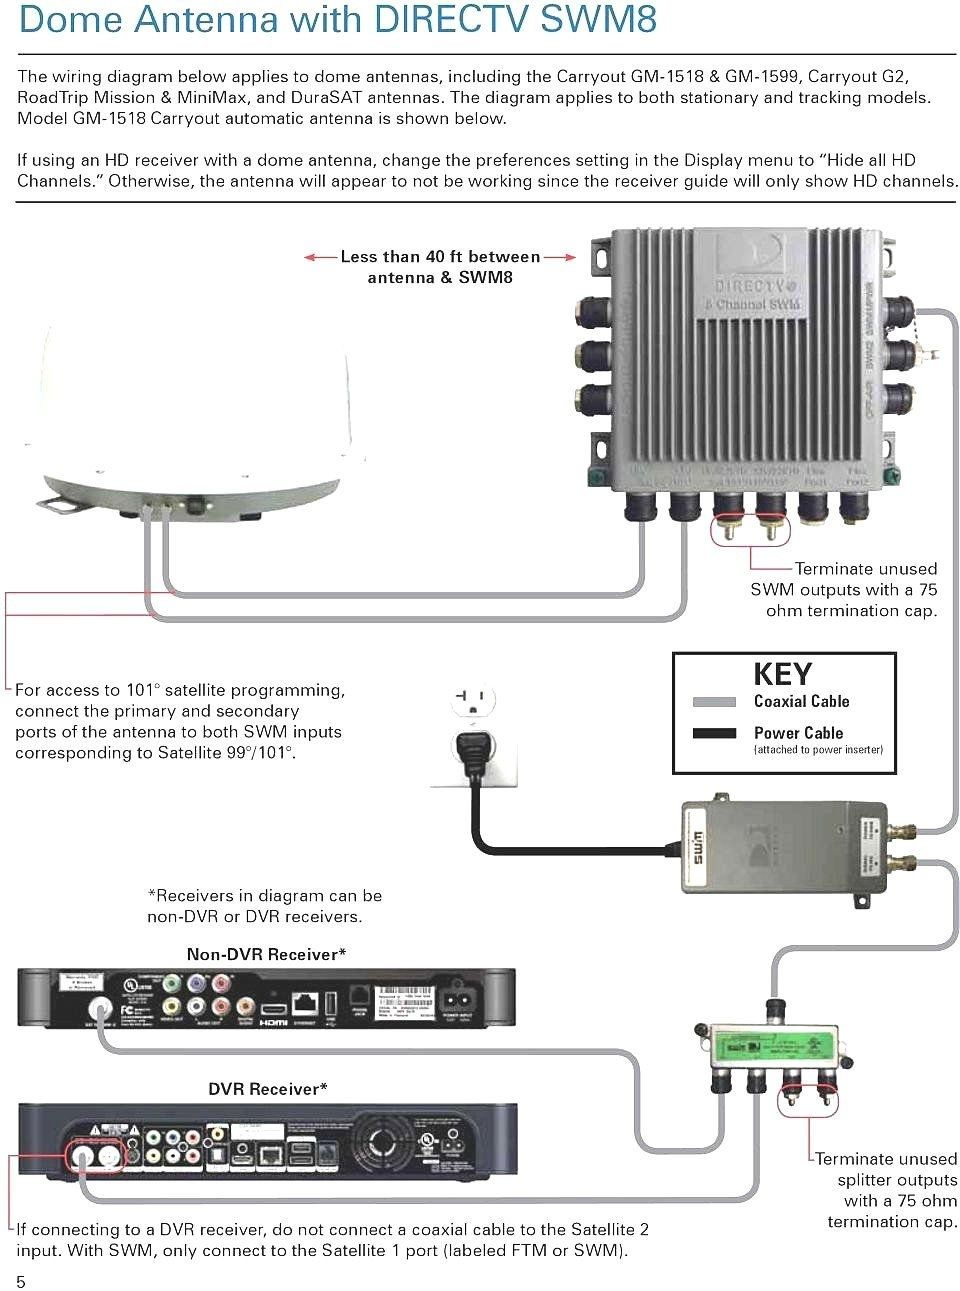 direct tv wiring diagram blurts me pleasing directv swm 16 lovelydirect tv wiring diagram blurts me [ 960 x 1291 Pixel ]